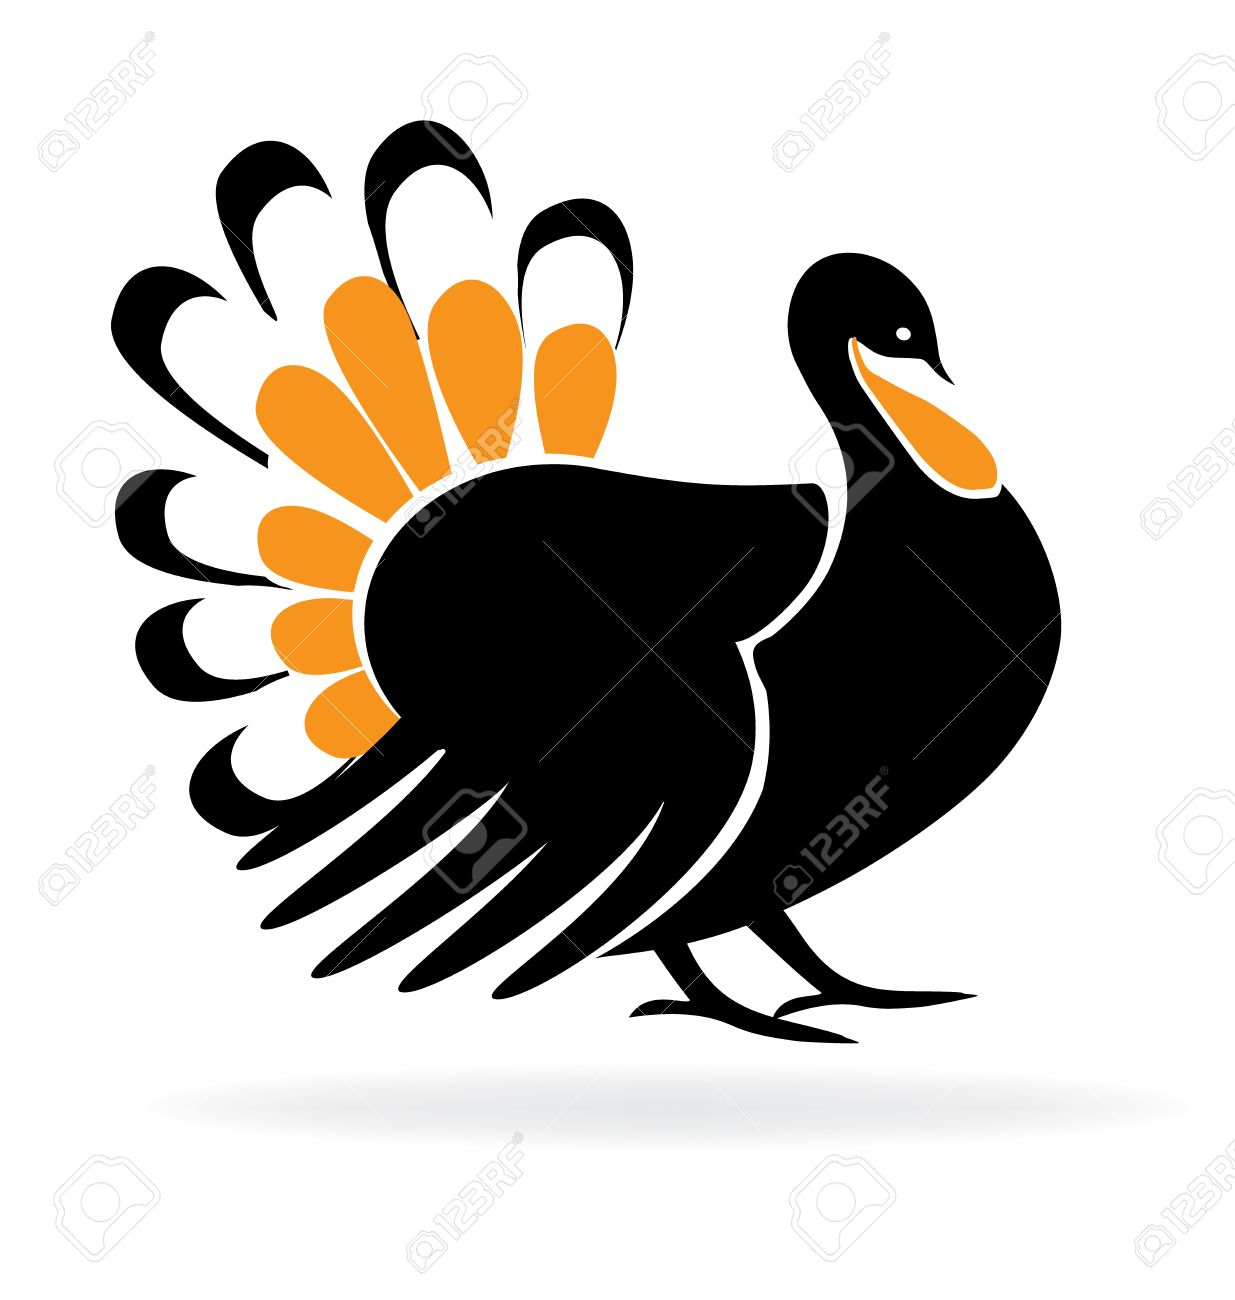 Clip Art Turkey Images & Stock Pictures. Royalty Free Clip Art ...